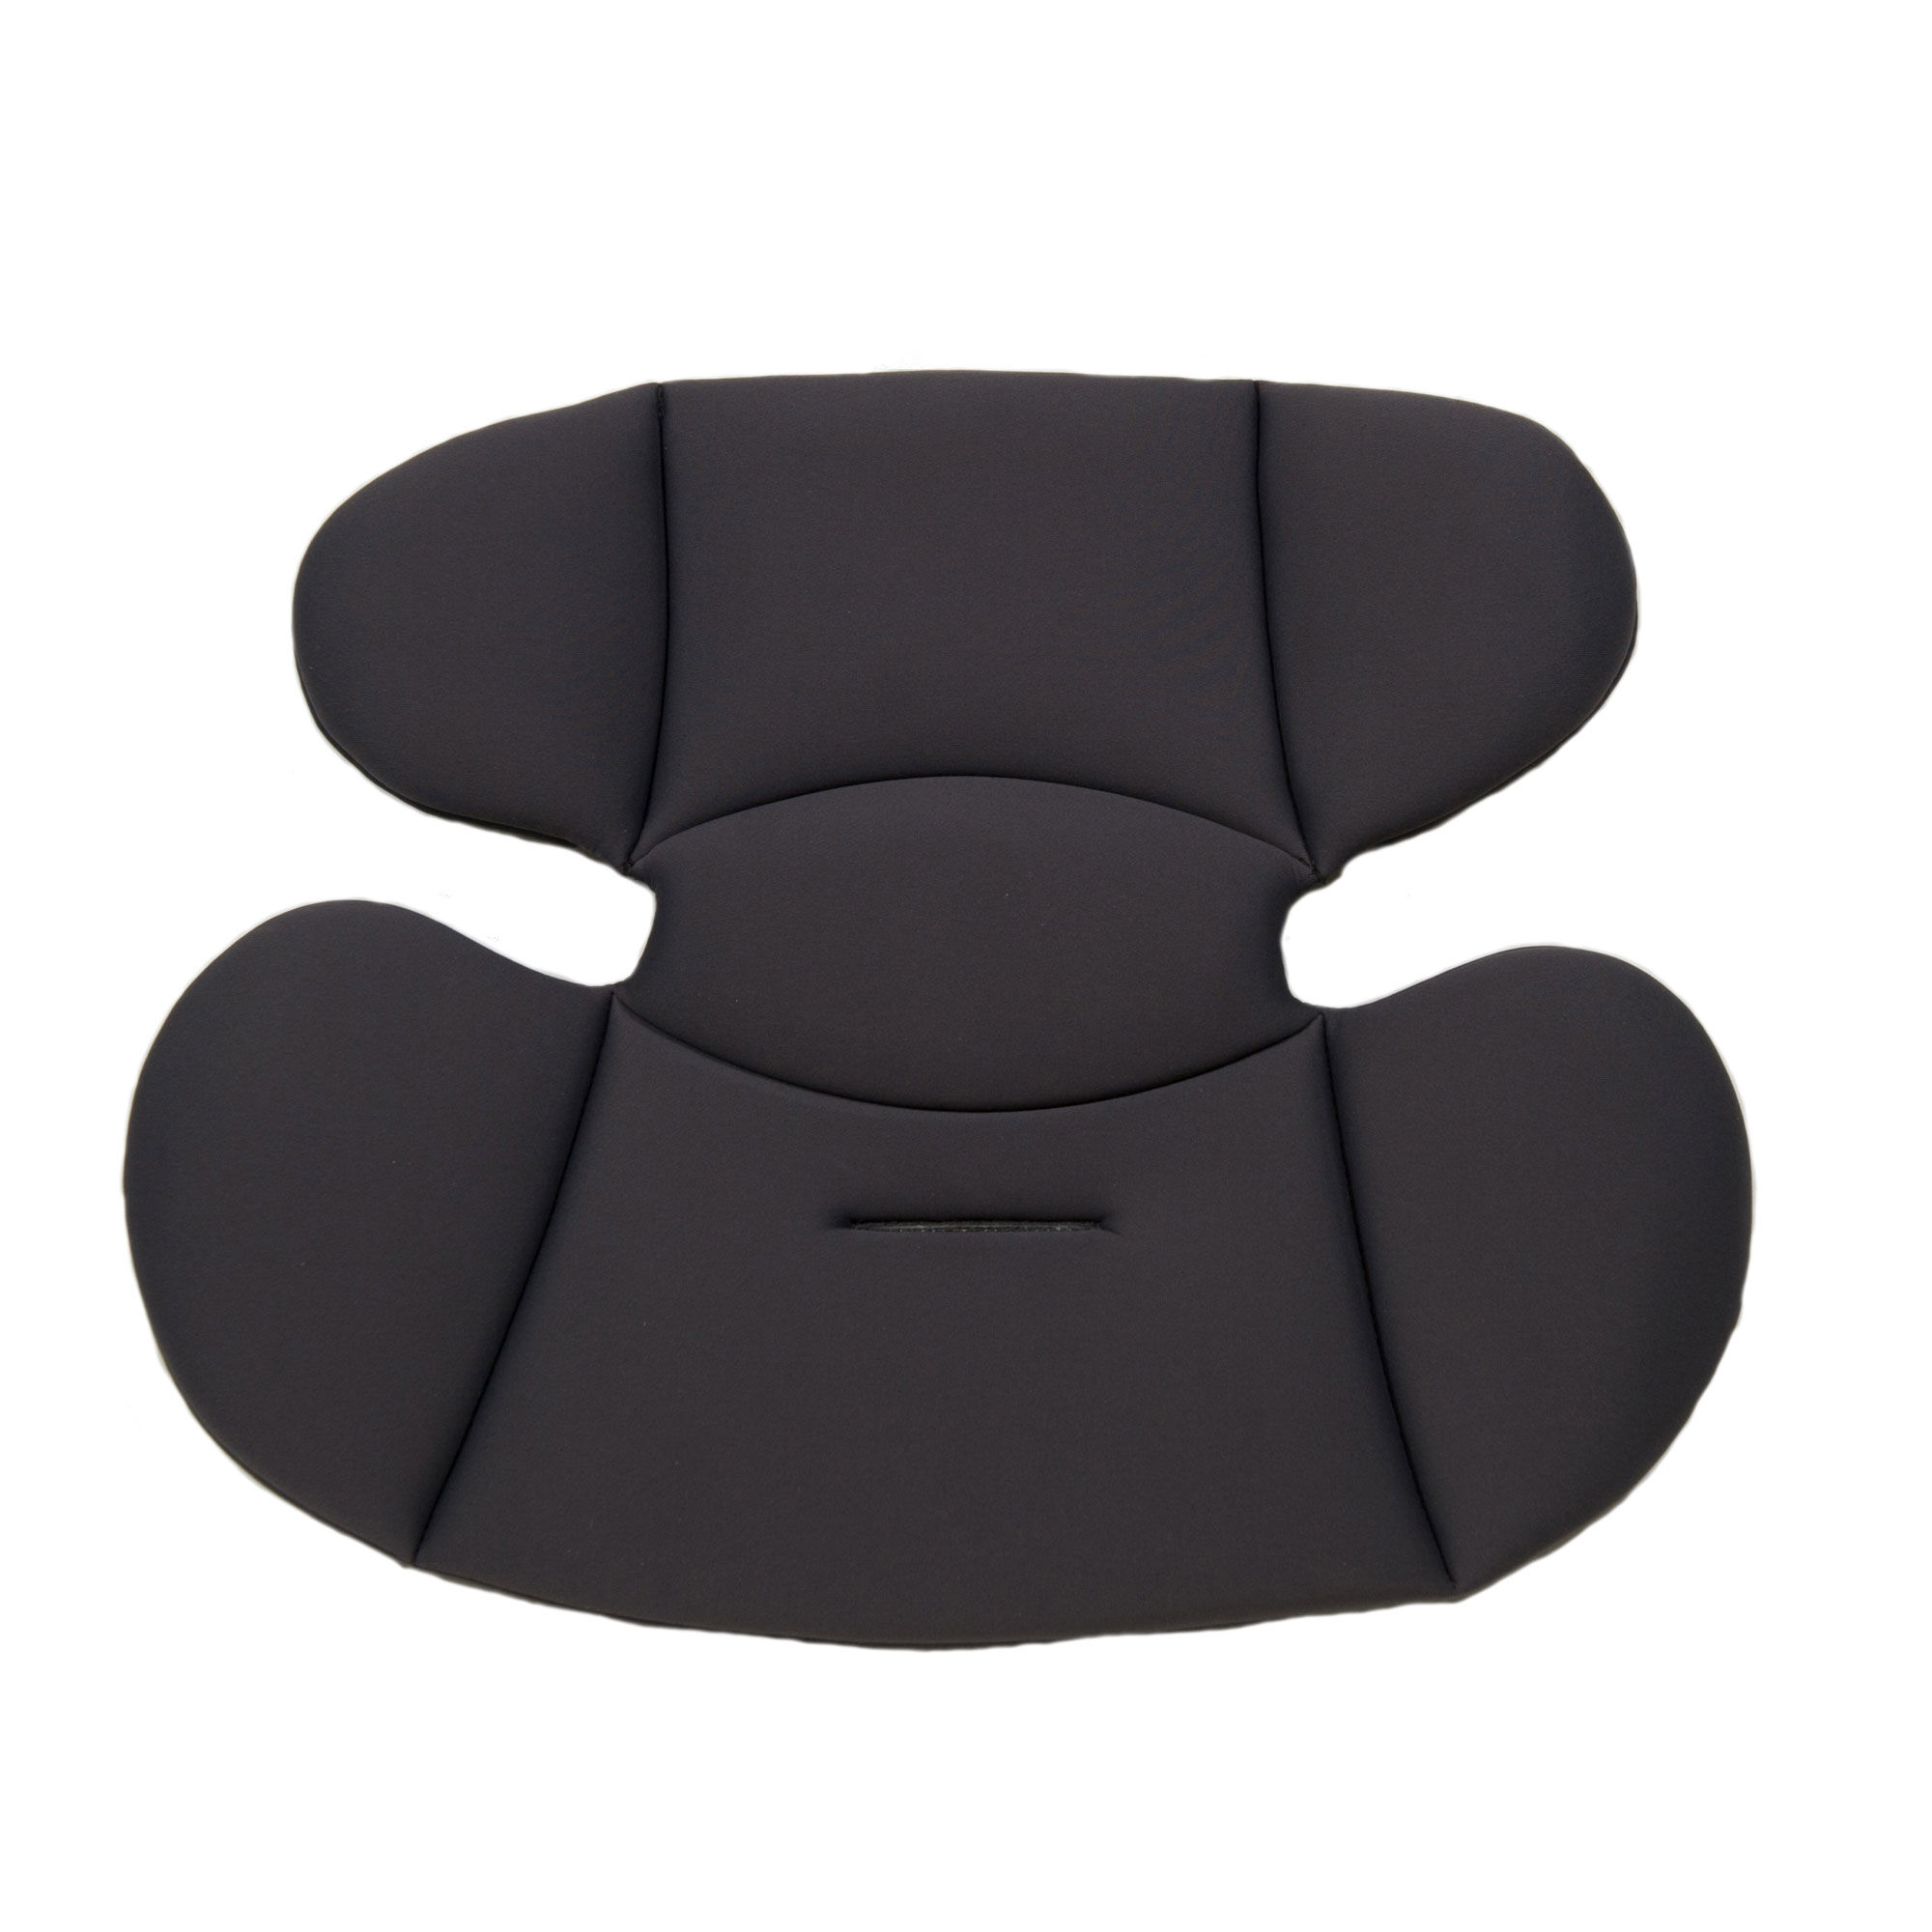 Play matts baby: Infant Insert For Convertible Car Seat